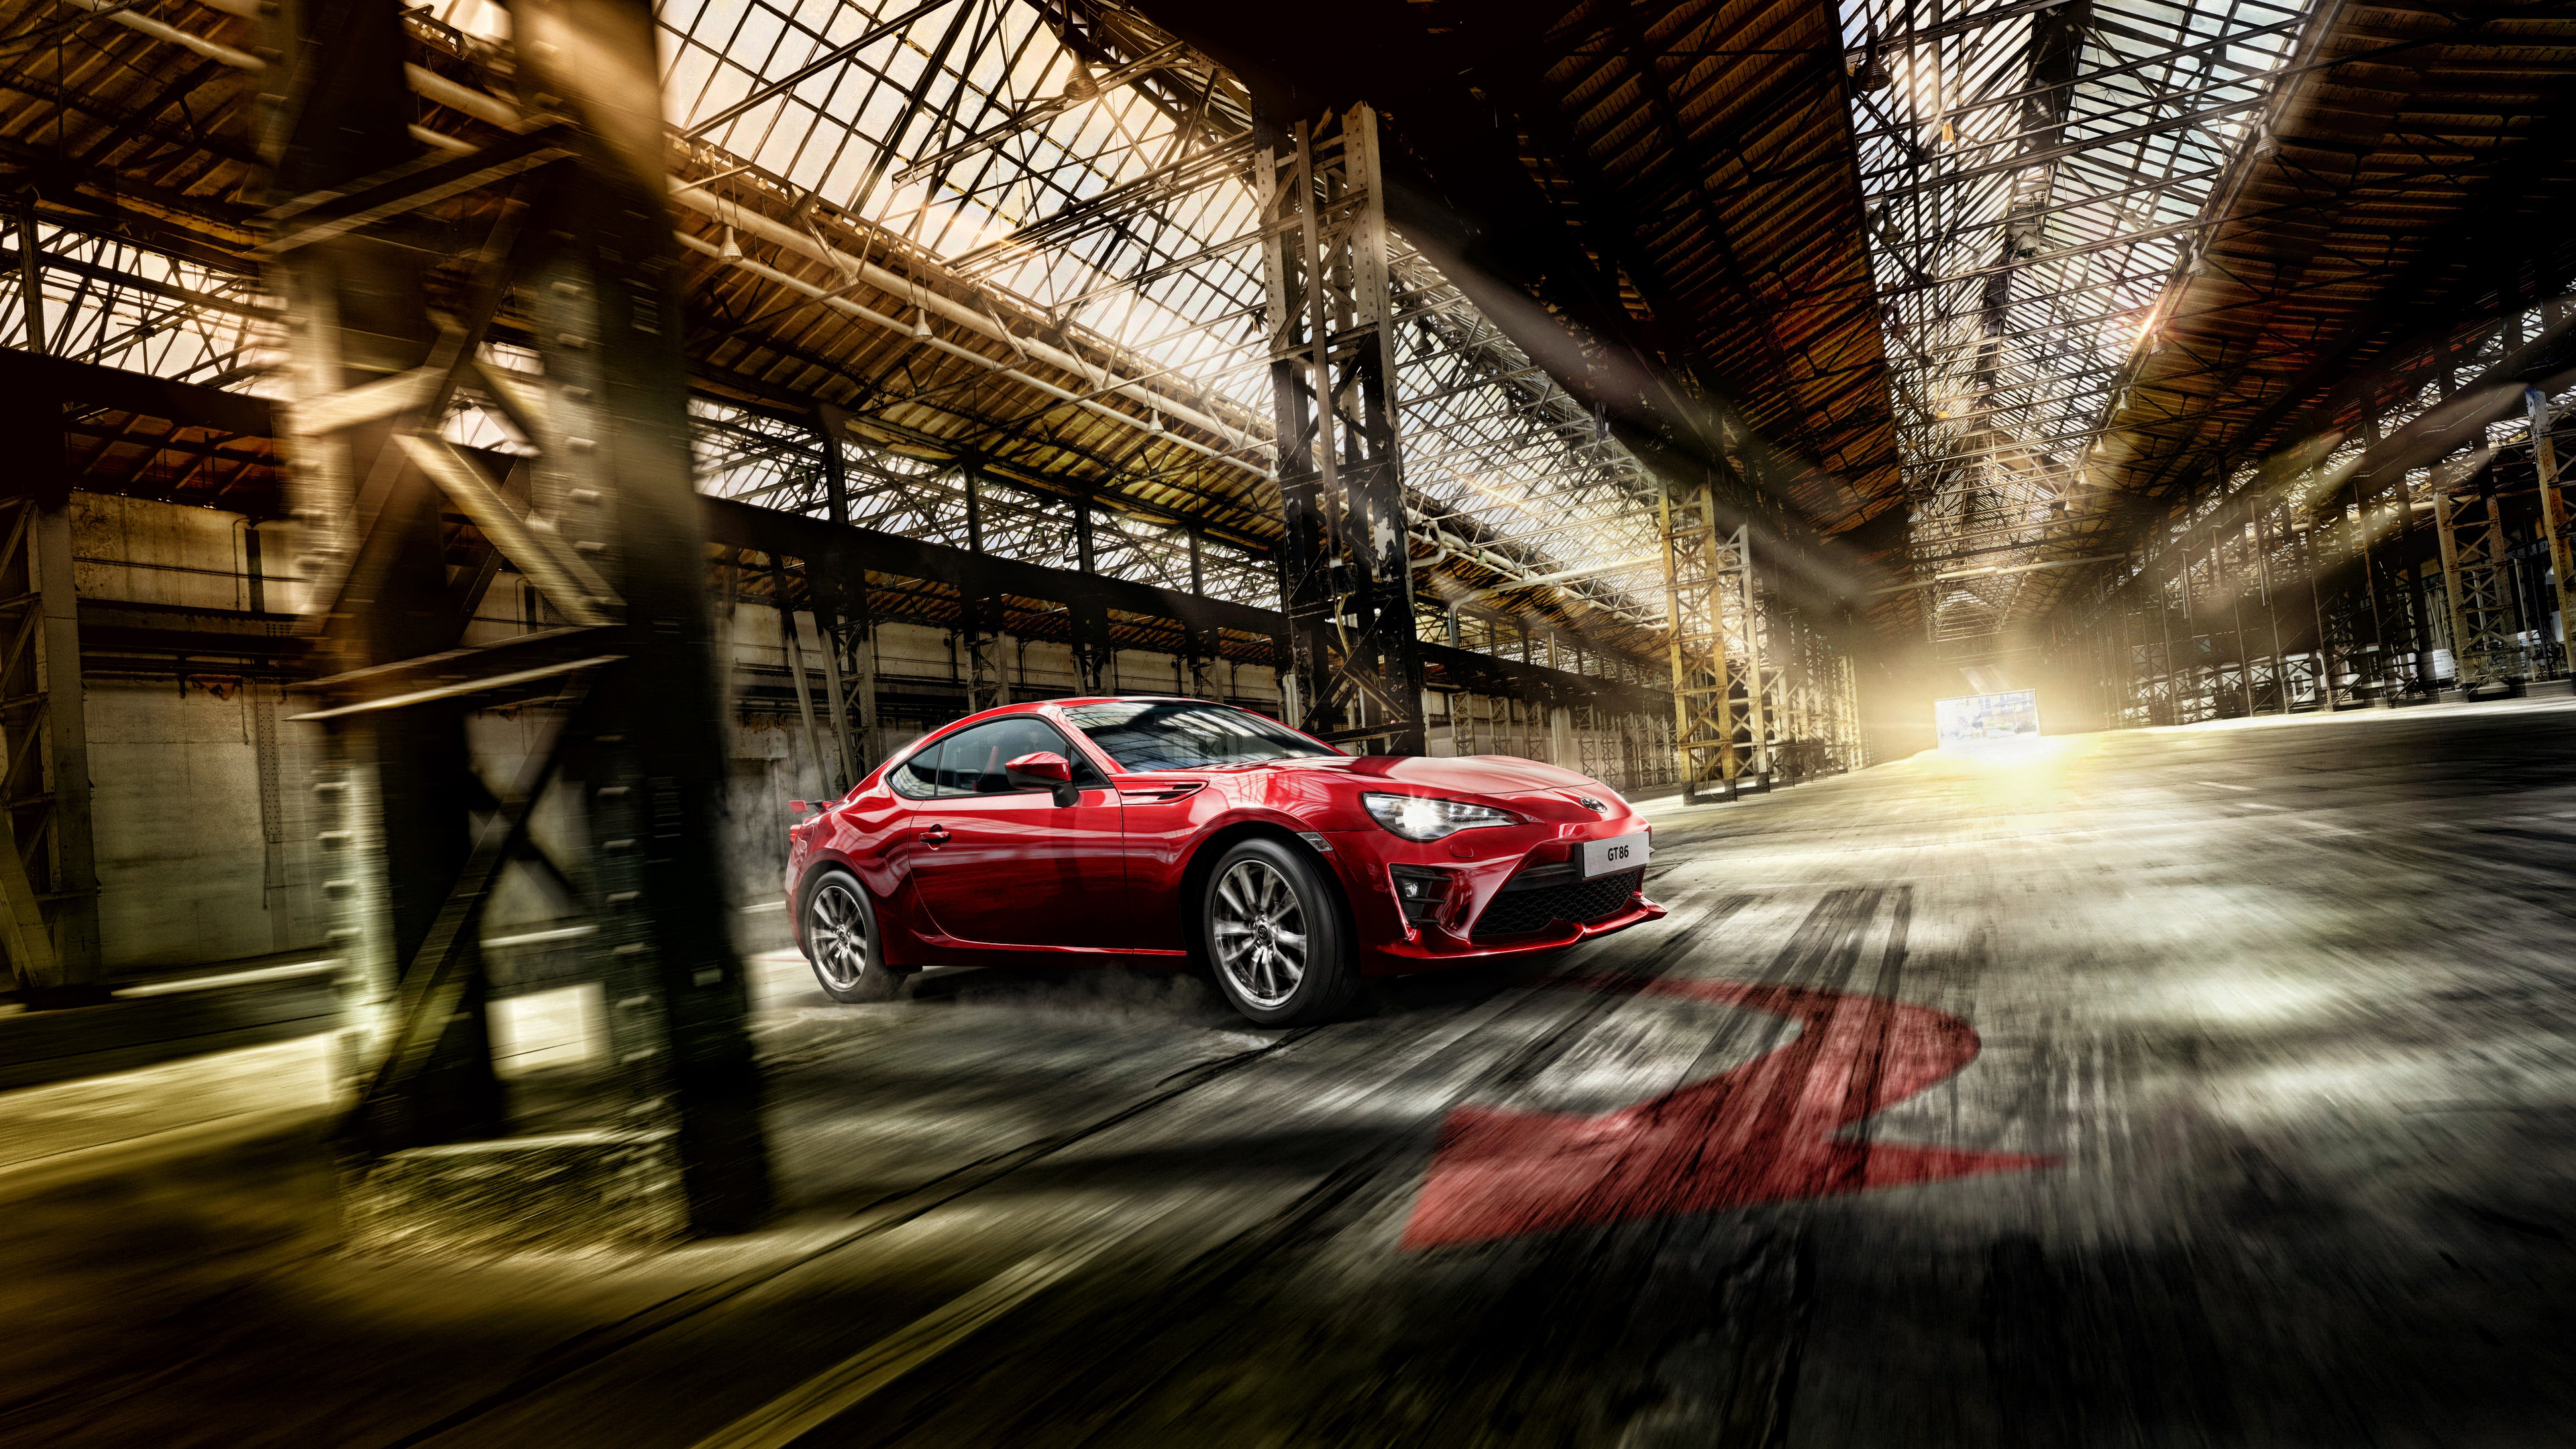 Toyota 86 sports car 2017 4k wallpaper hd car wallpapers - 4k wallpaper for cars ...